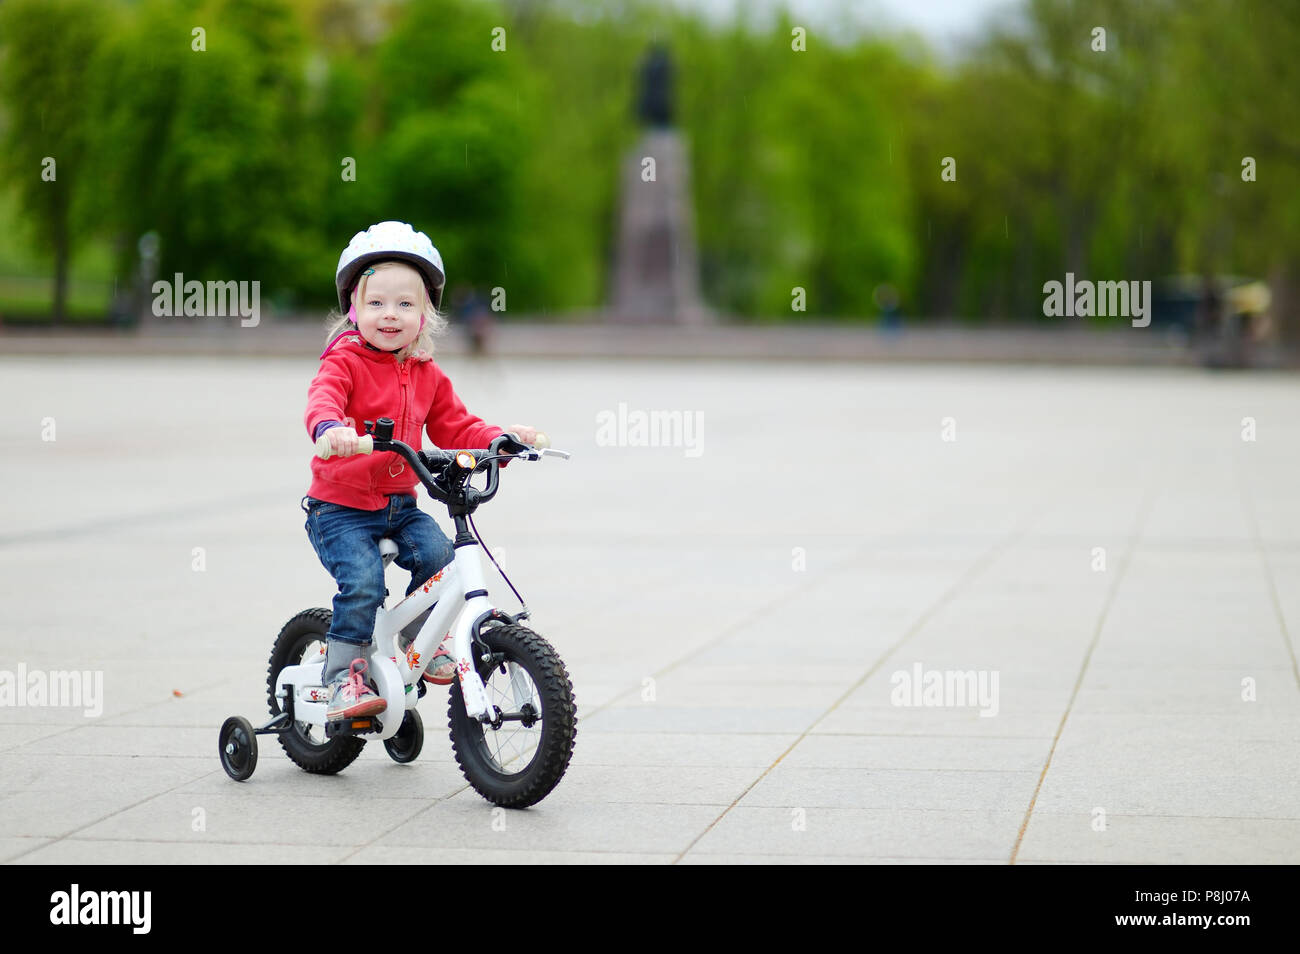 9866b58b2df Adorable toddler girl riding her first bike Stock Photo: 211837006 ...